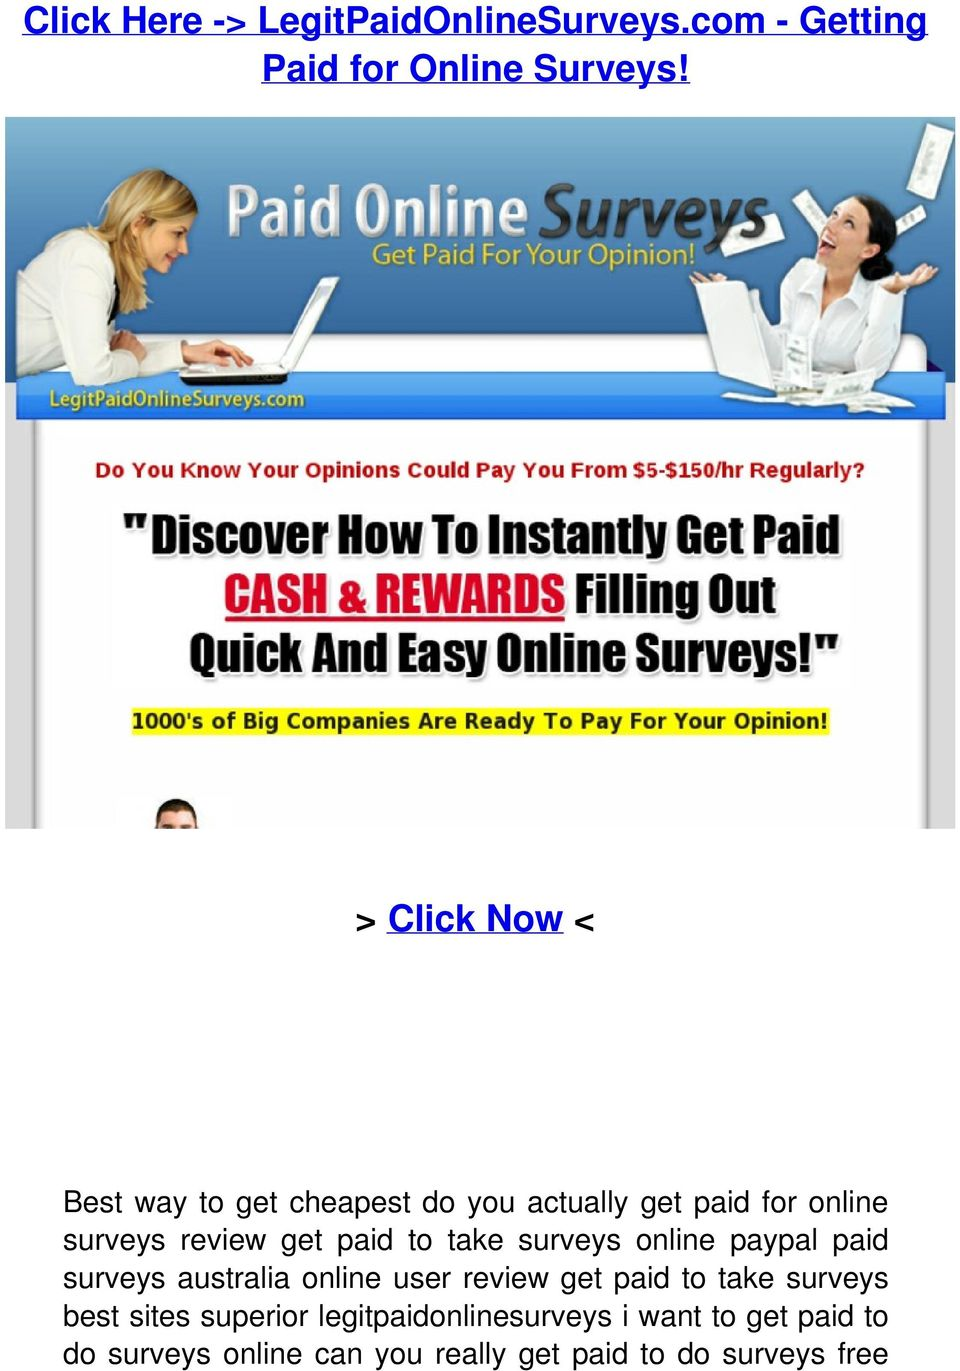 paid to take surveys online paypal paid surveys australia online user review get paid to take